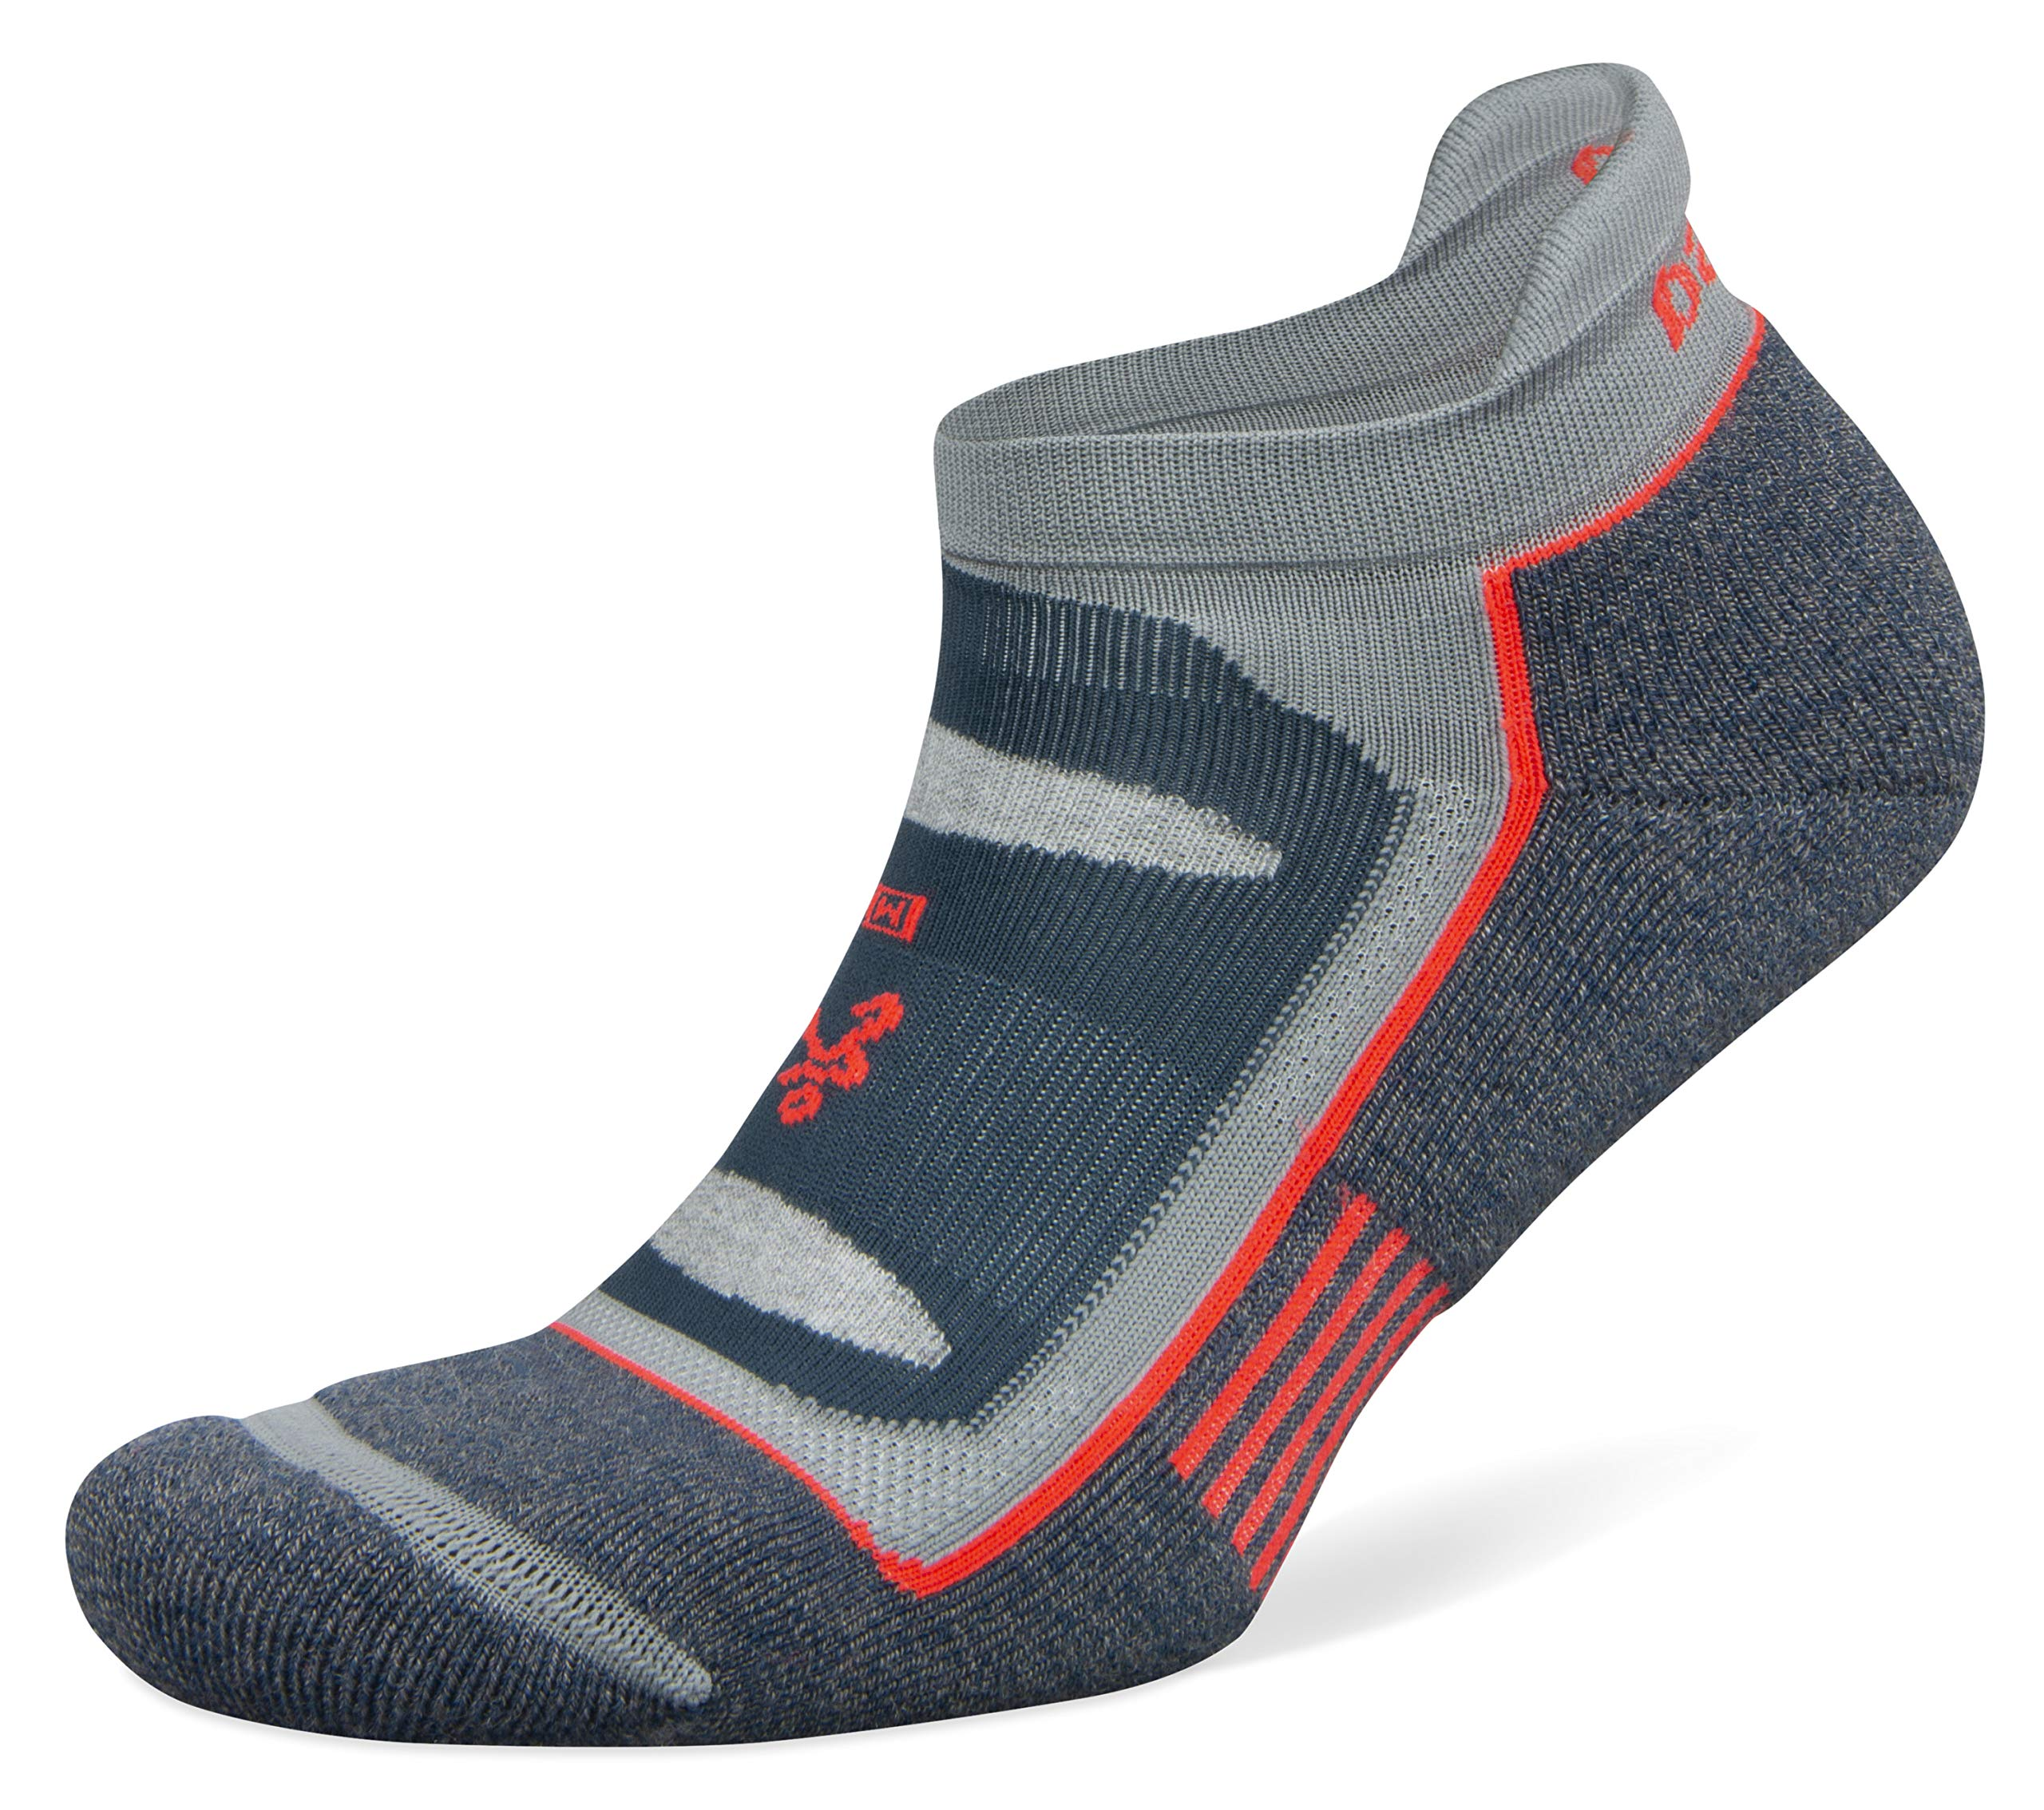 Balega Blister Resist No Show Socks for Men and Women (1 Pair), Legion Blue/Grey, X-Large by Balega